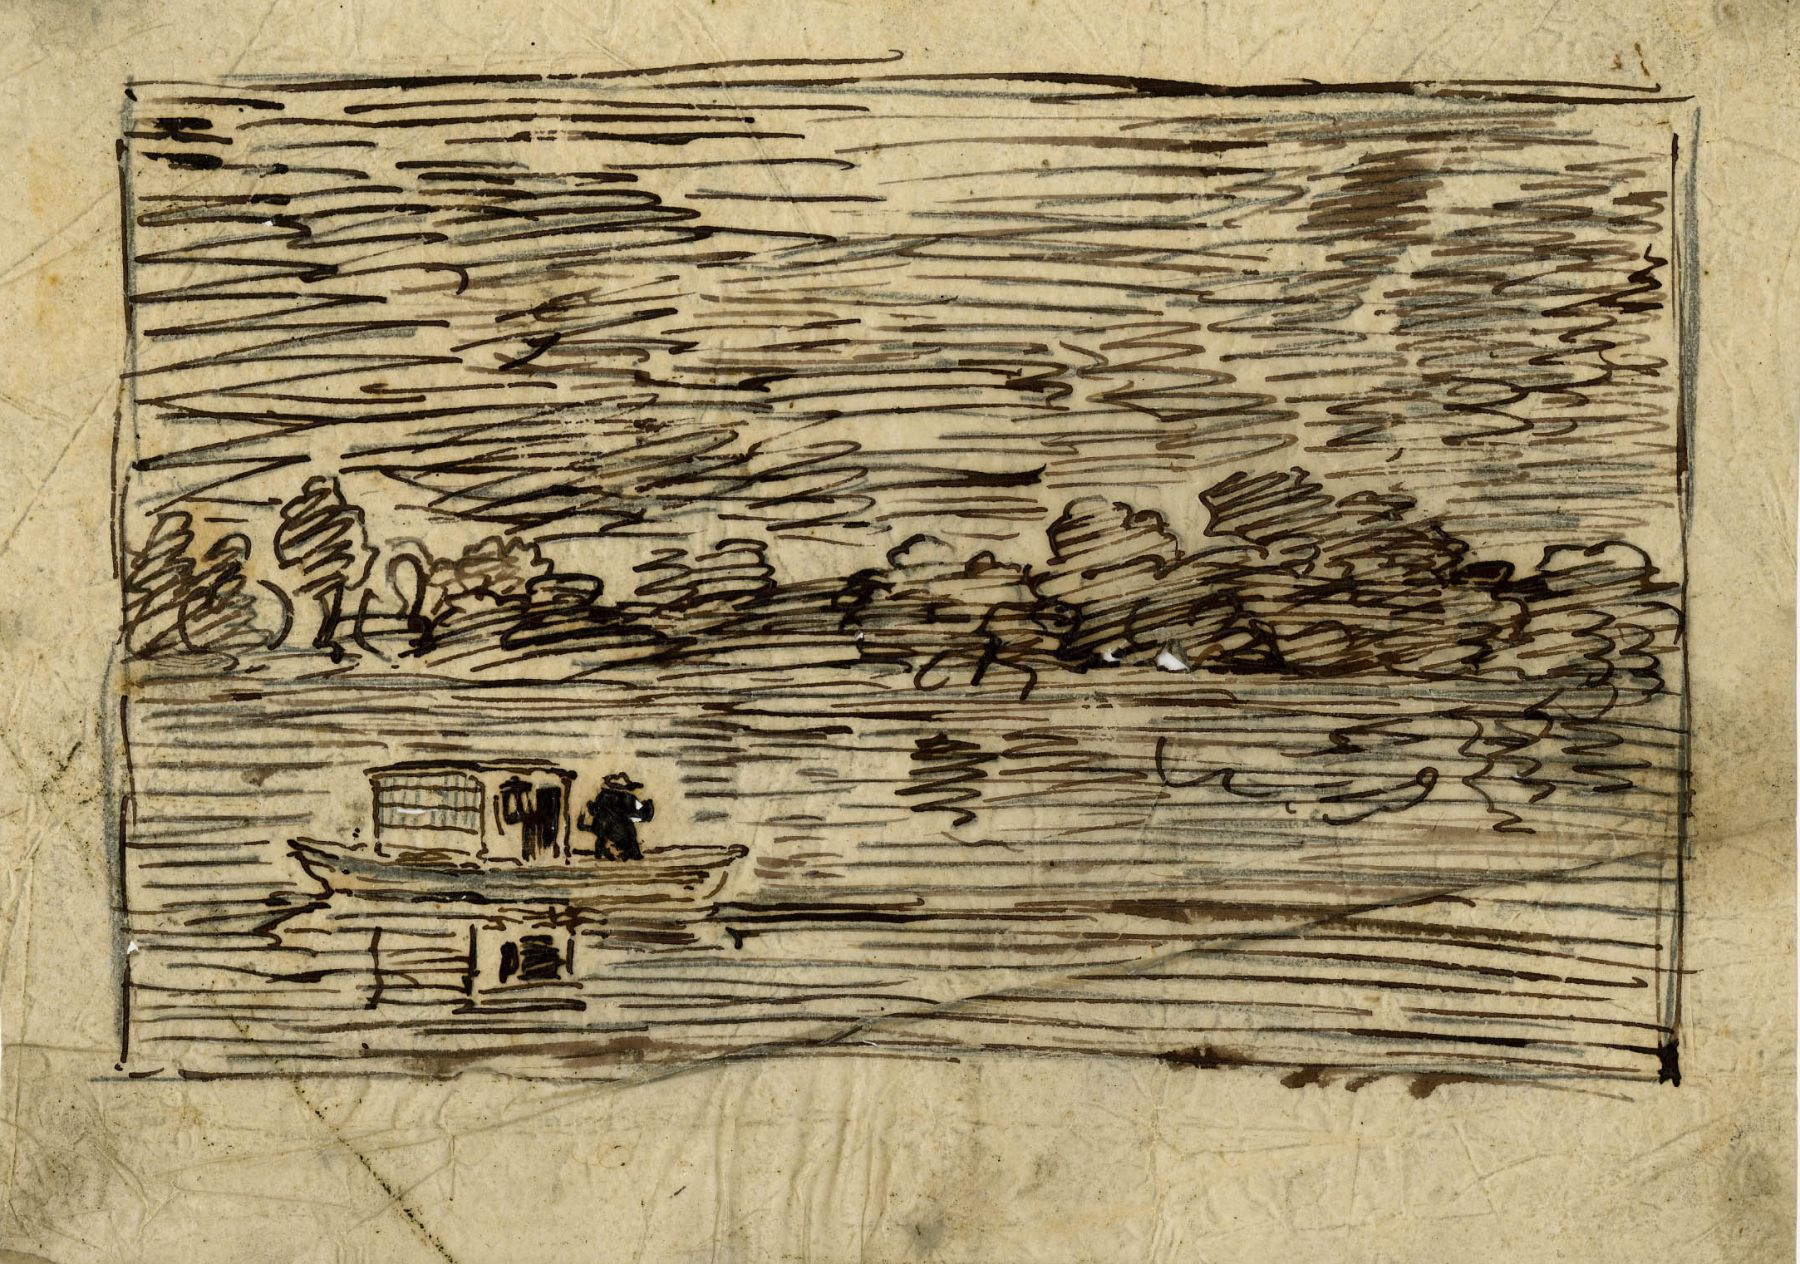 Charles F. Daubigny, Night trip or Fishing net    Pen and ink on tracing paper  5 1/4 x 7 1/4 inches